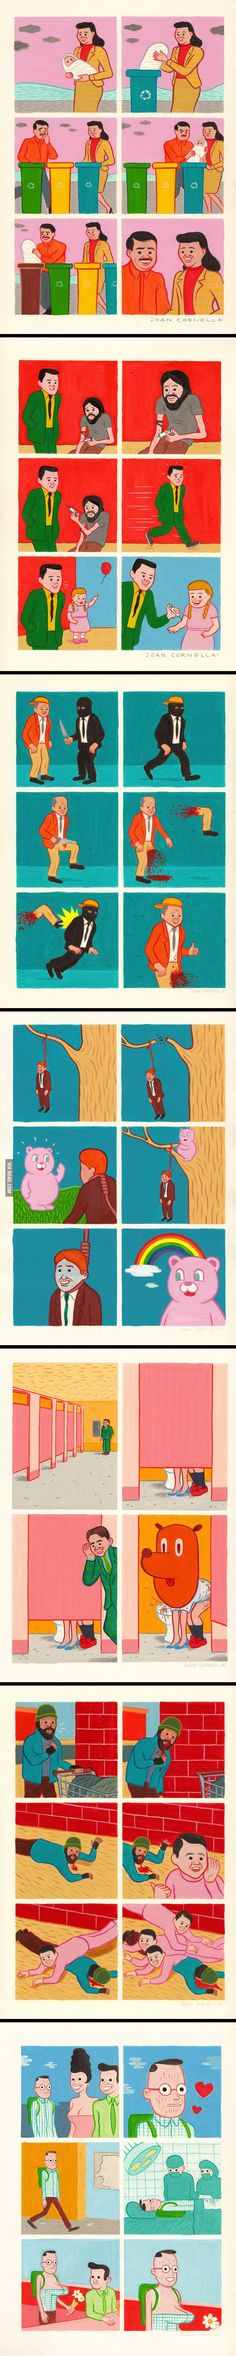 We haven't seen any Joan Cornella in a while Woodworking Guide, Custom Woodworking, Bad Memes, Funny Memes, Black Jokes, Troll Meme, Bride Of Chucky, Humor Grafico, Adult Humor